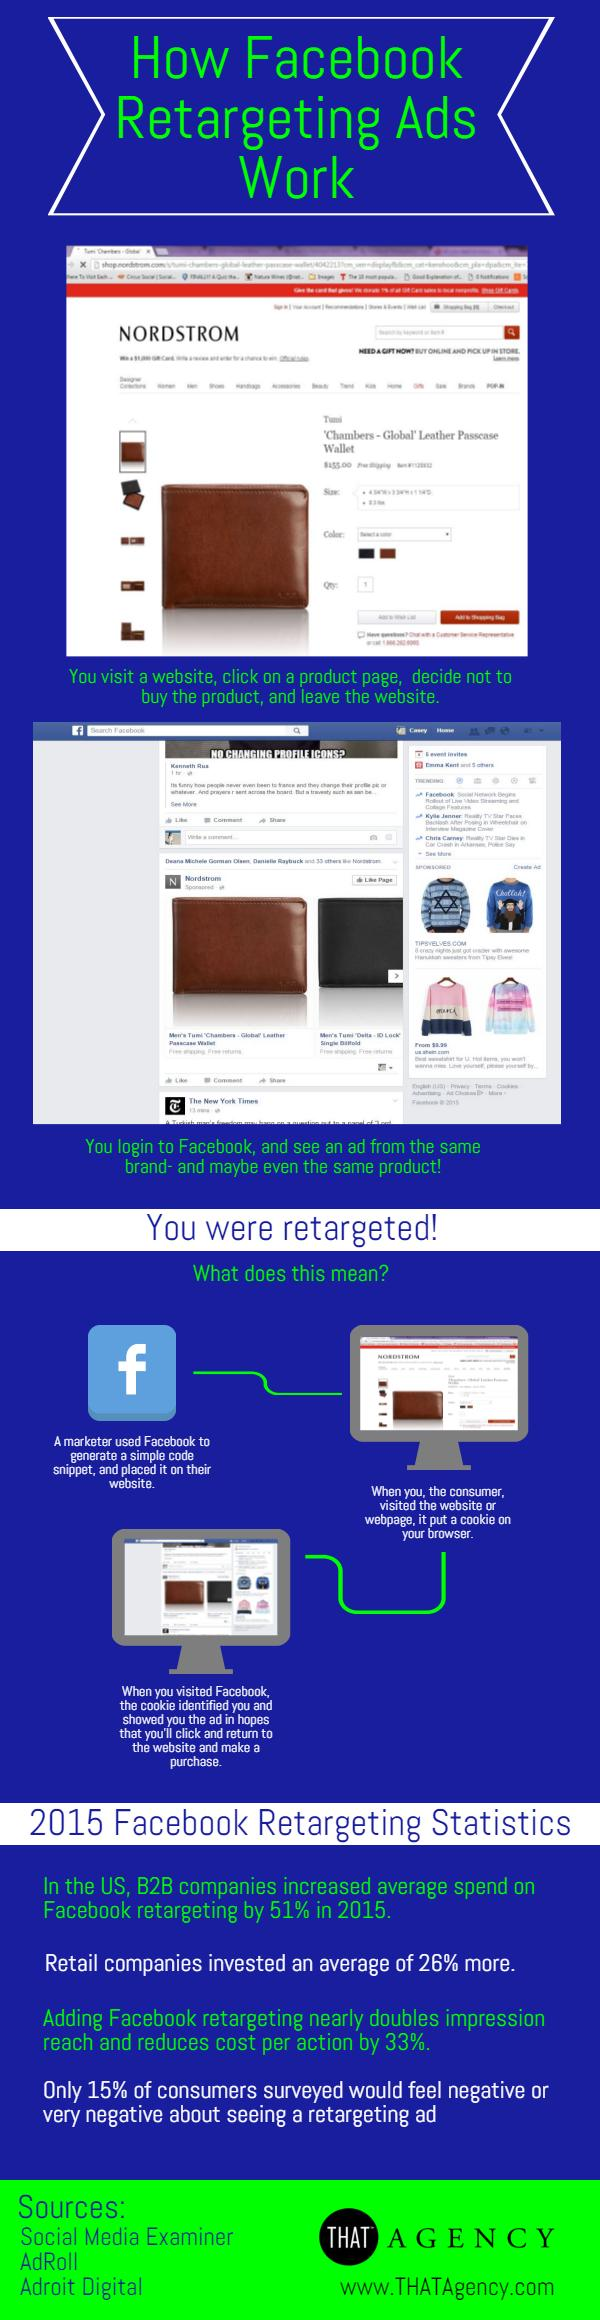 If you're looking to see a higher ROI from Facebook, we recommend considering Facebook retargeting ads as part of your marketing strategy.